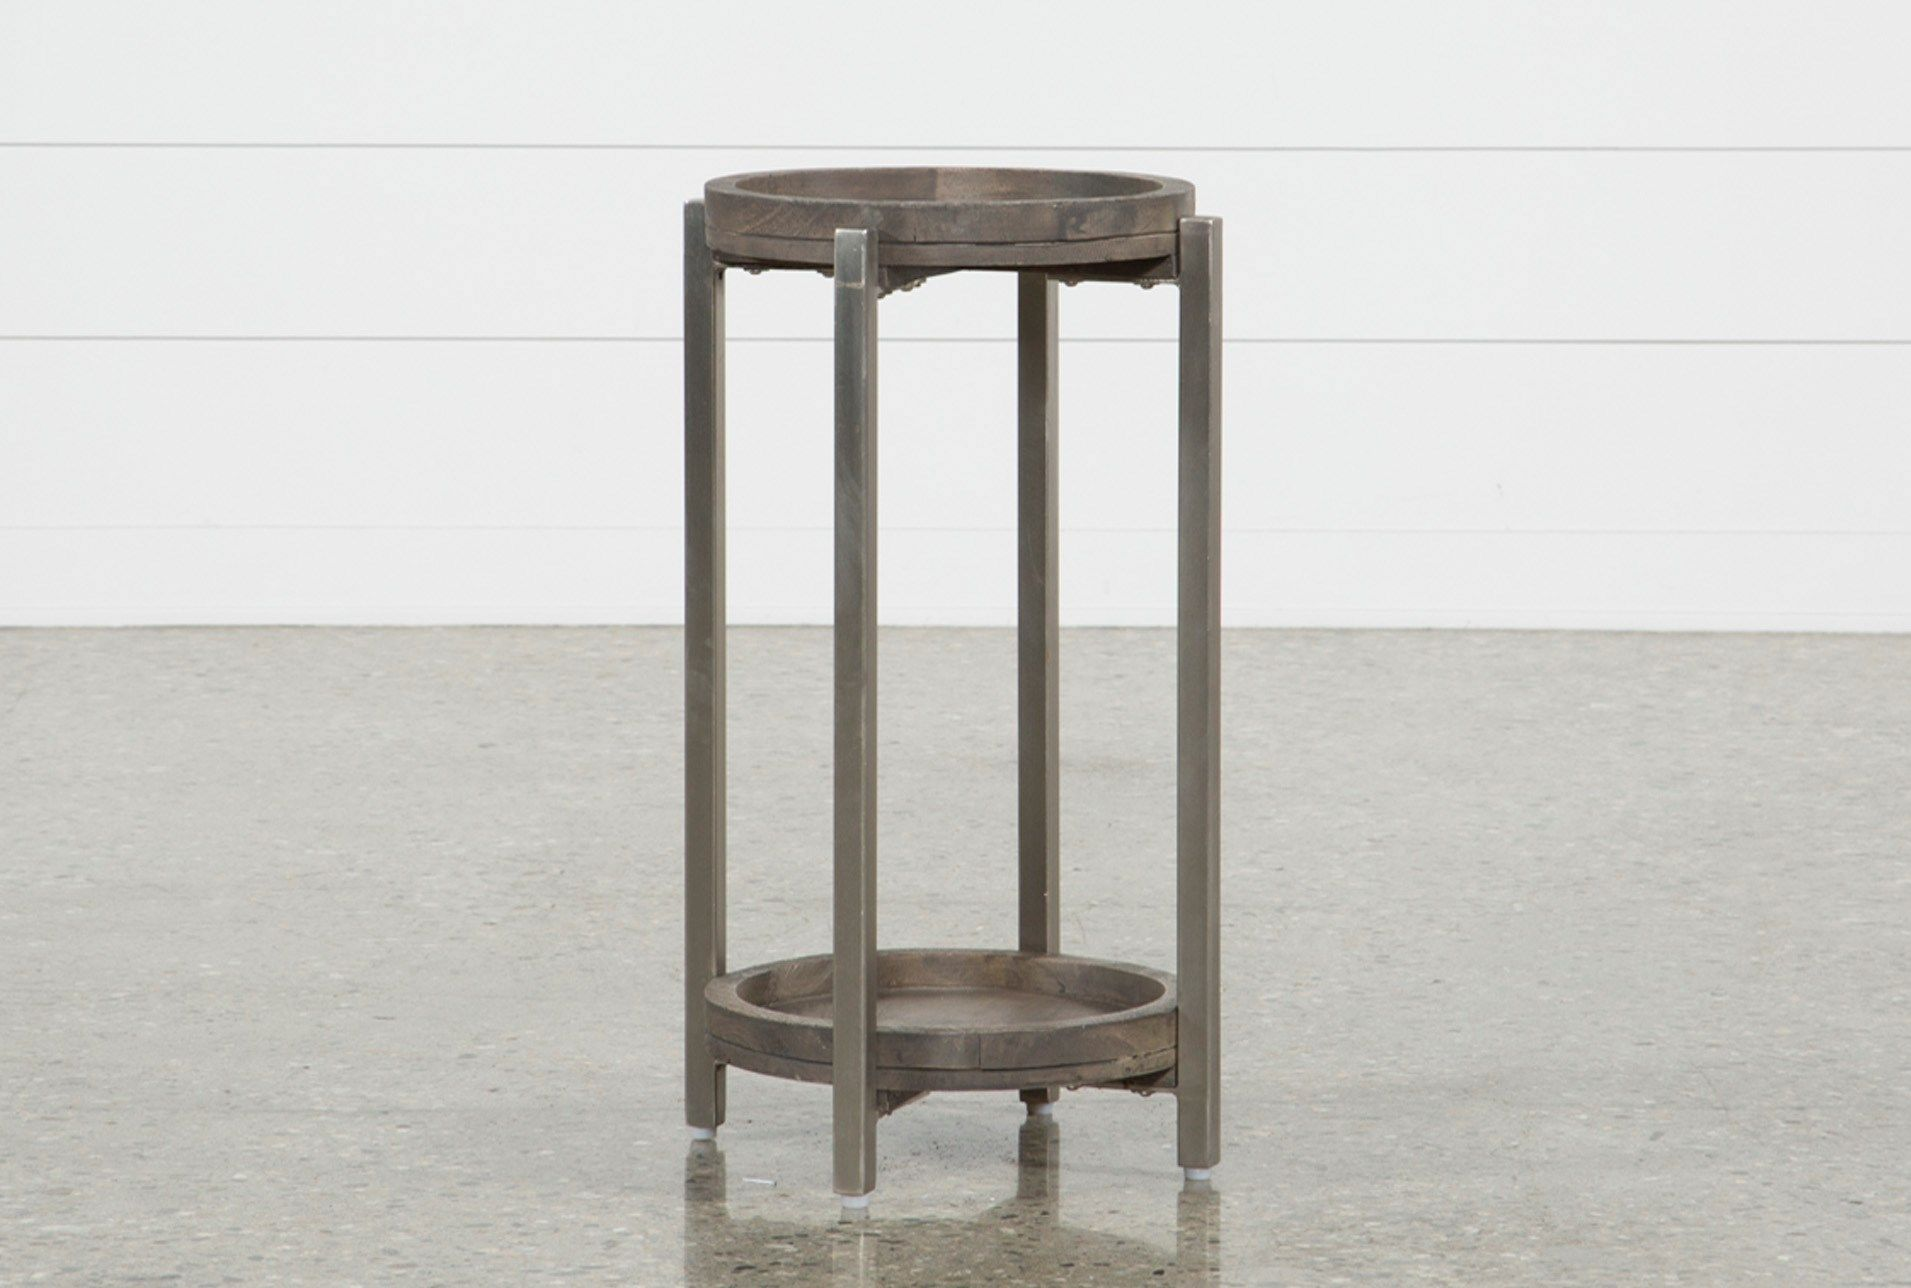 swell round accent table brown end tables rounding acacia wood mini true its name this just sleek nickel finished iron legs stand sturdy while drift oil brings natural lewis room